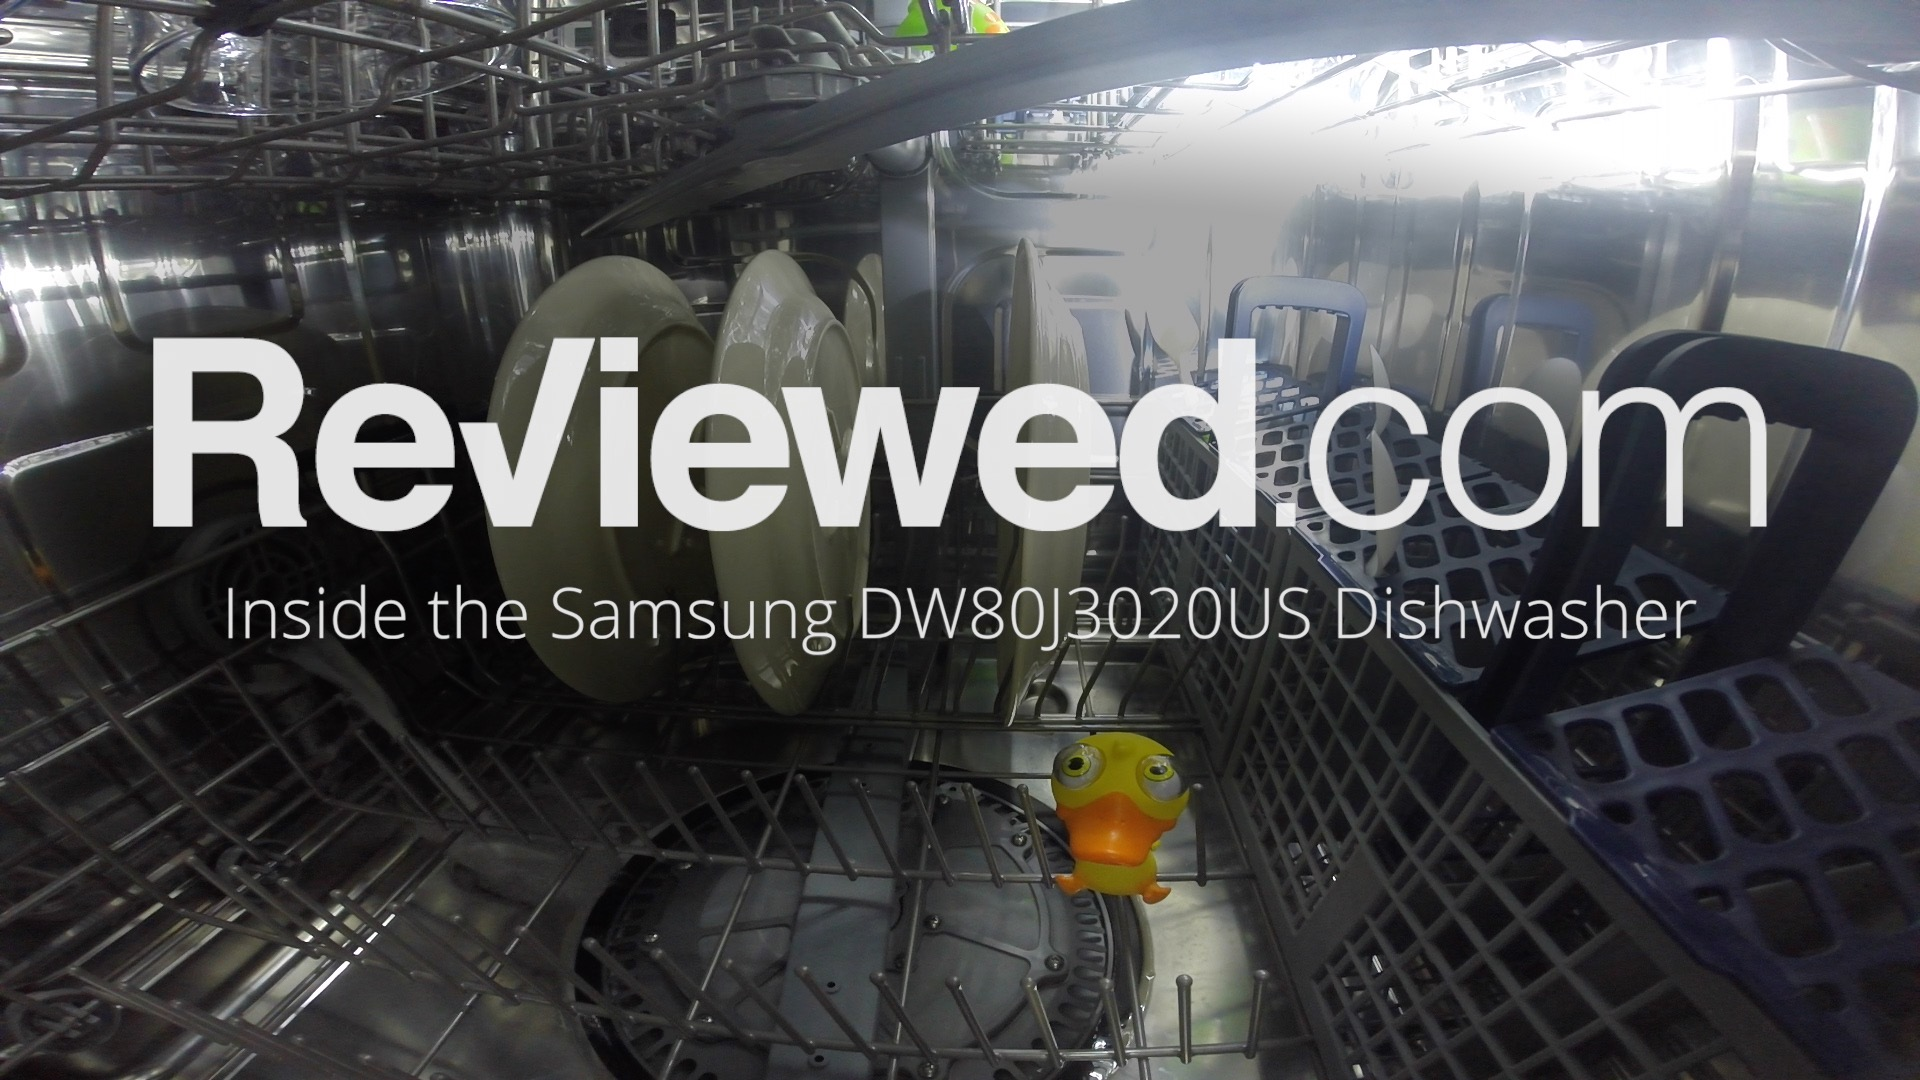 Take a ride INSIDE a Samsung dishwasher